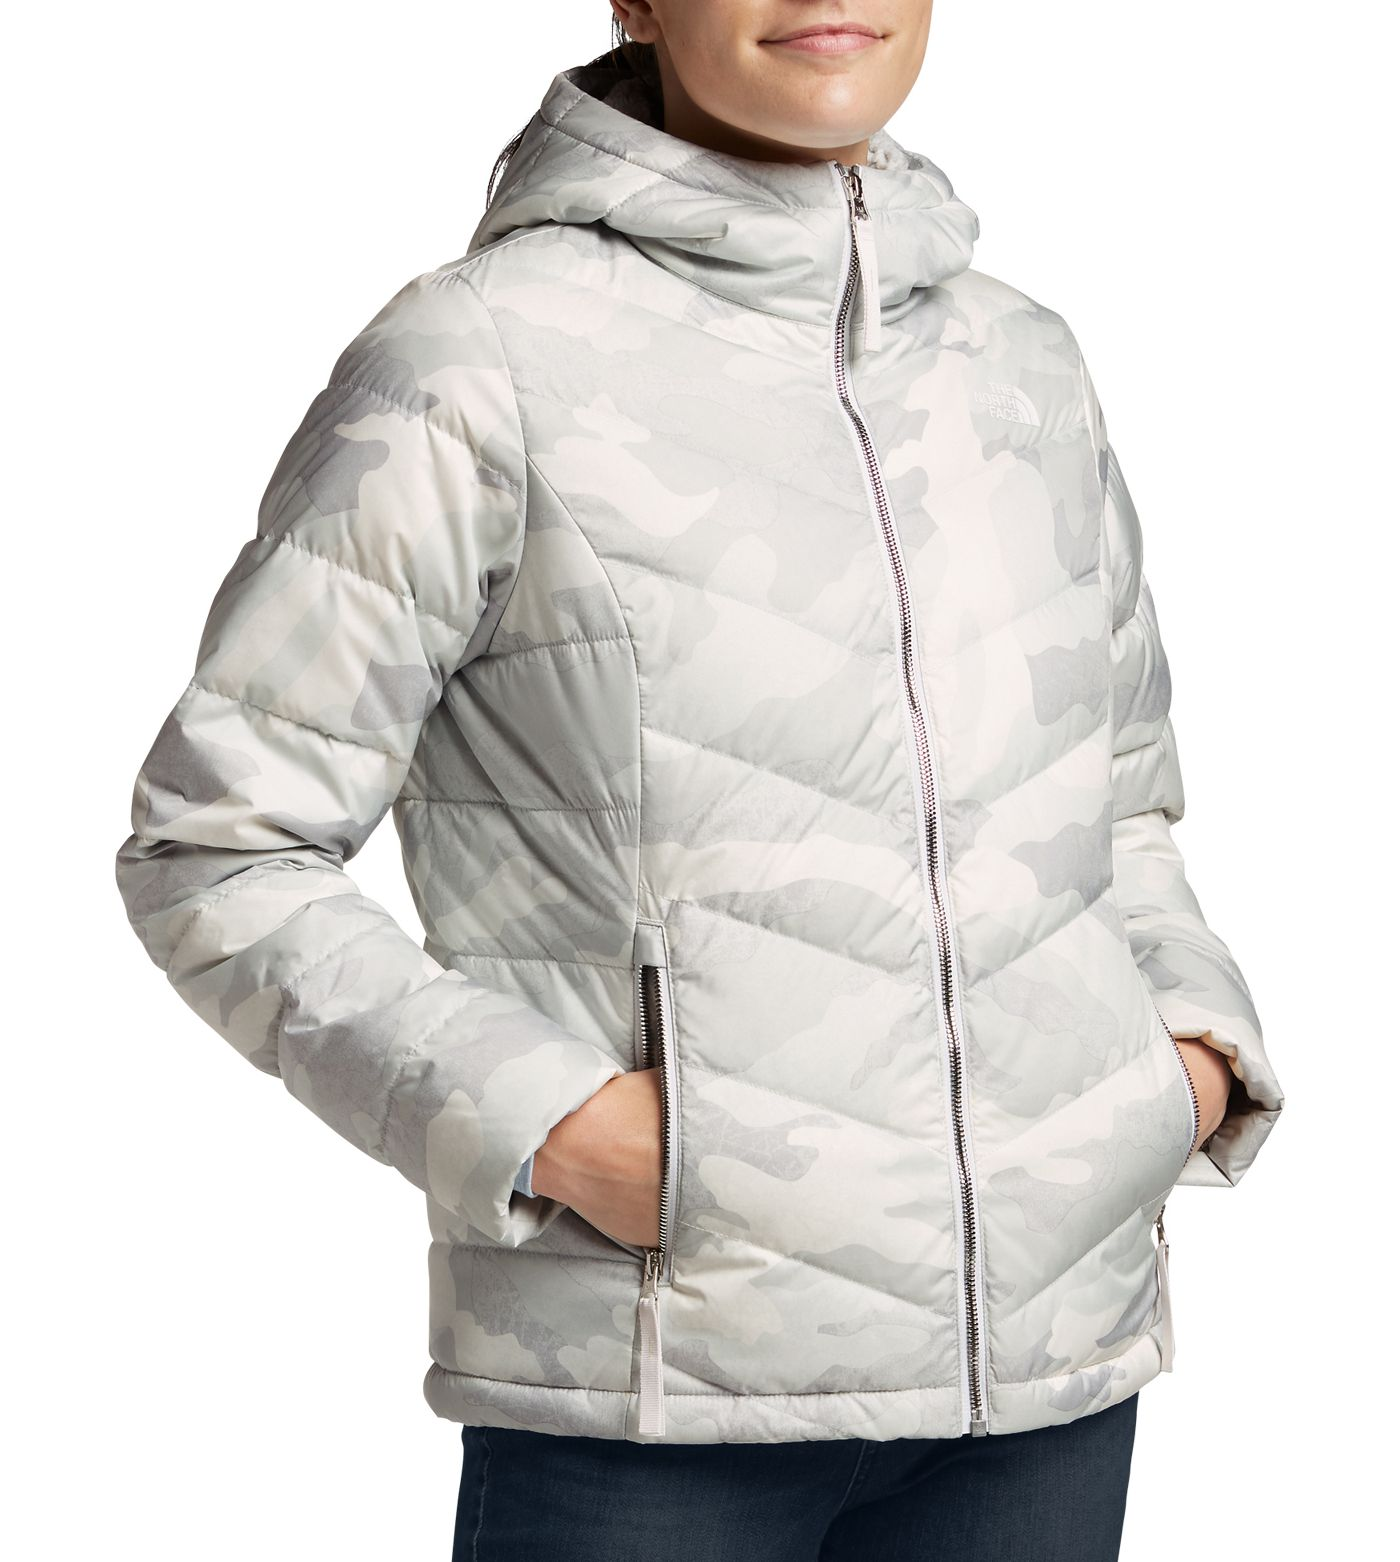 The North Face Women's Alpz Luxe Hooded Jacket